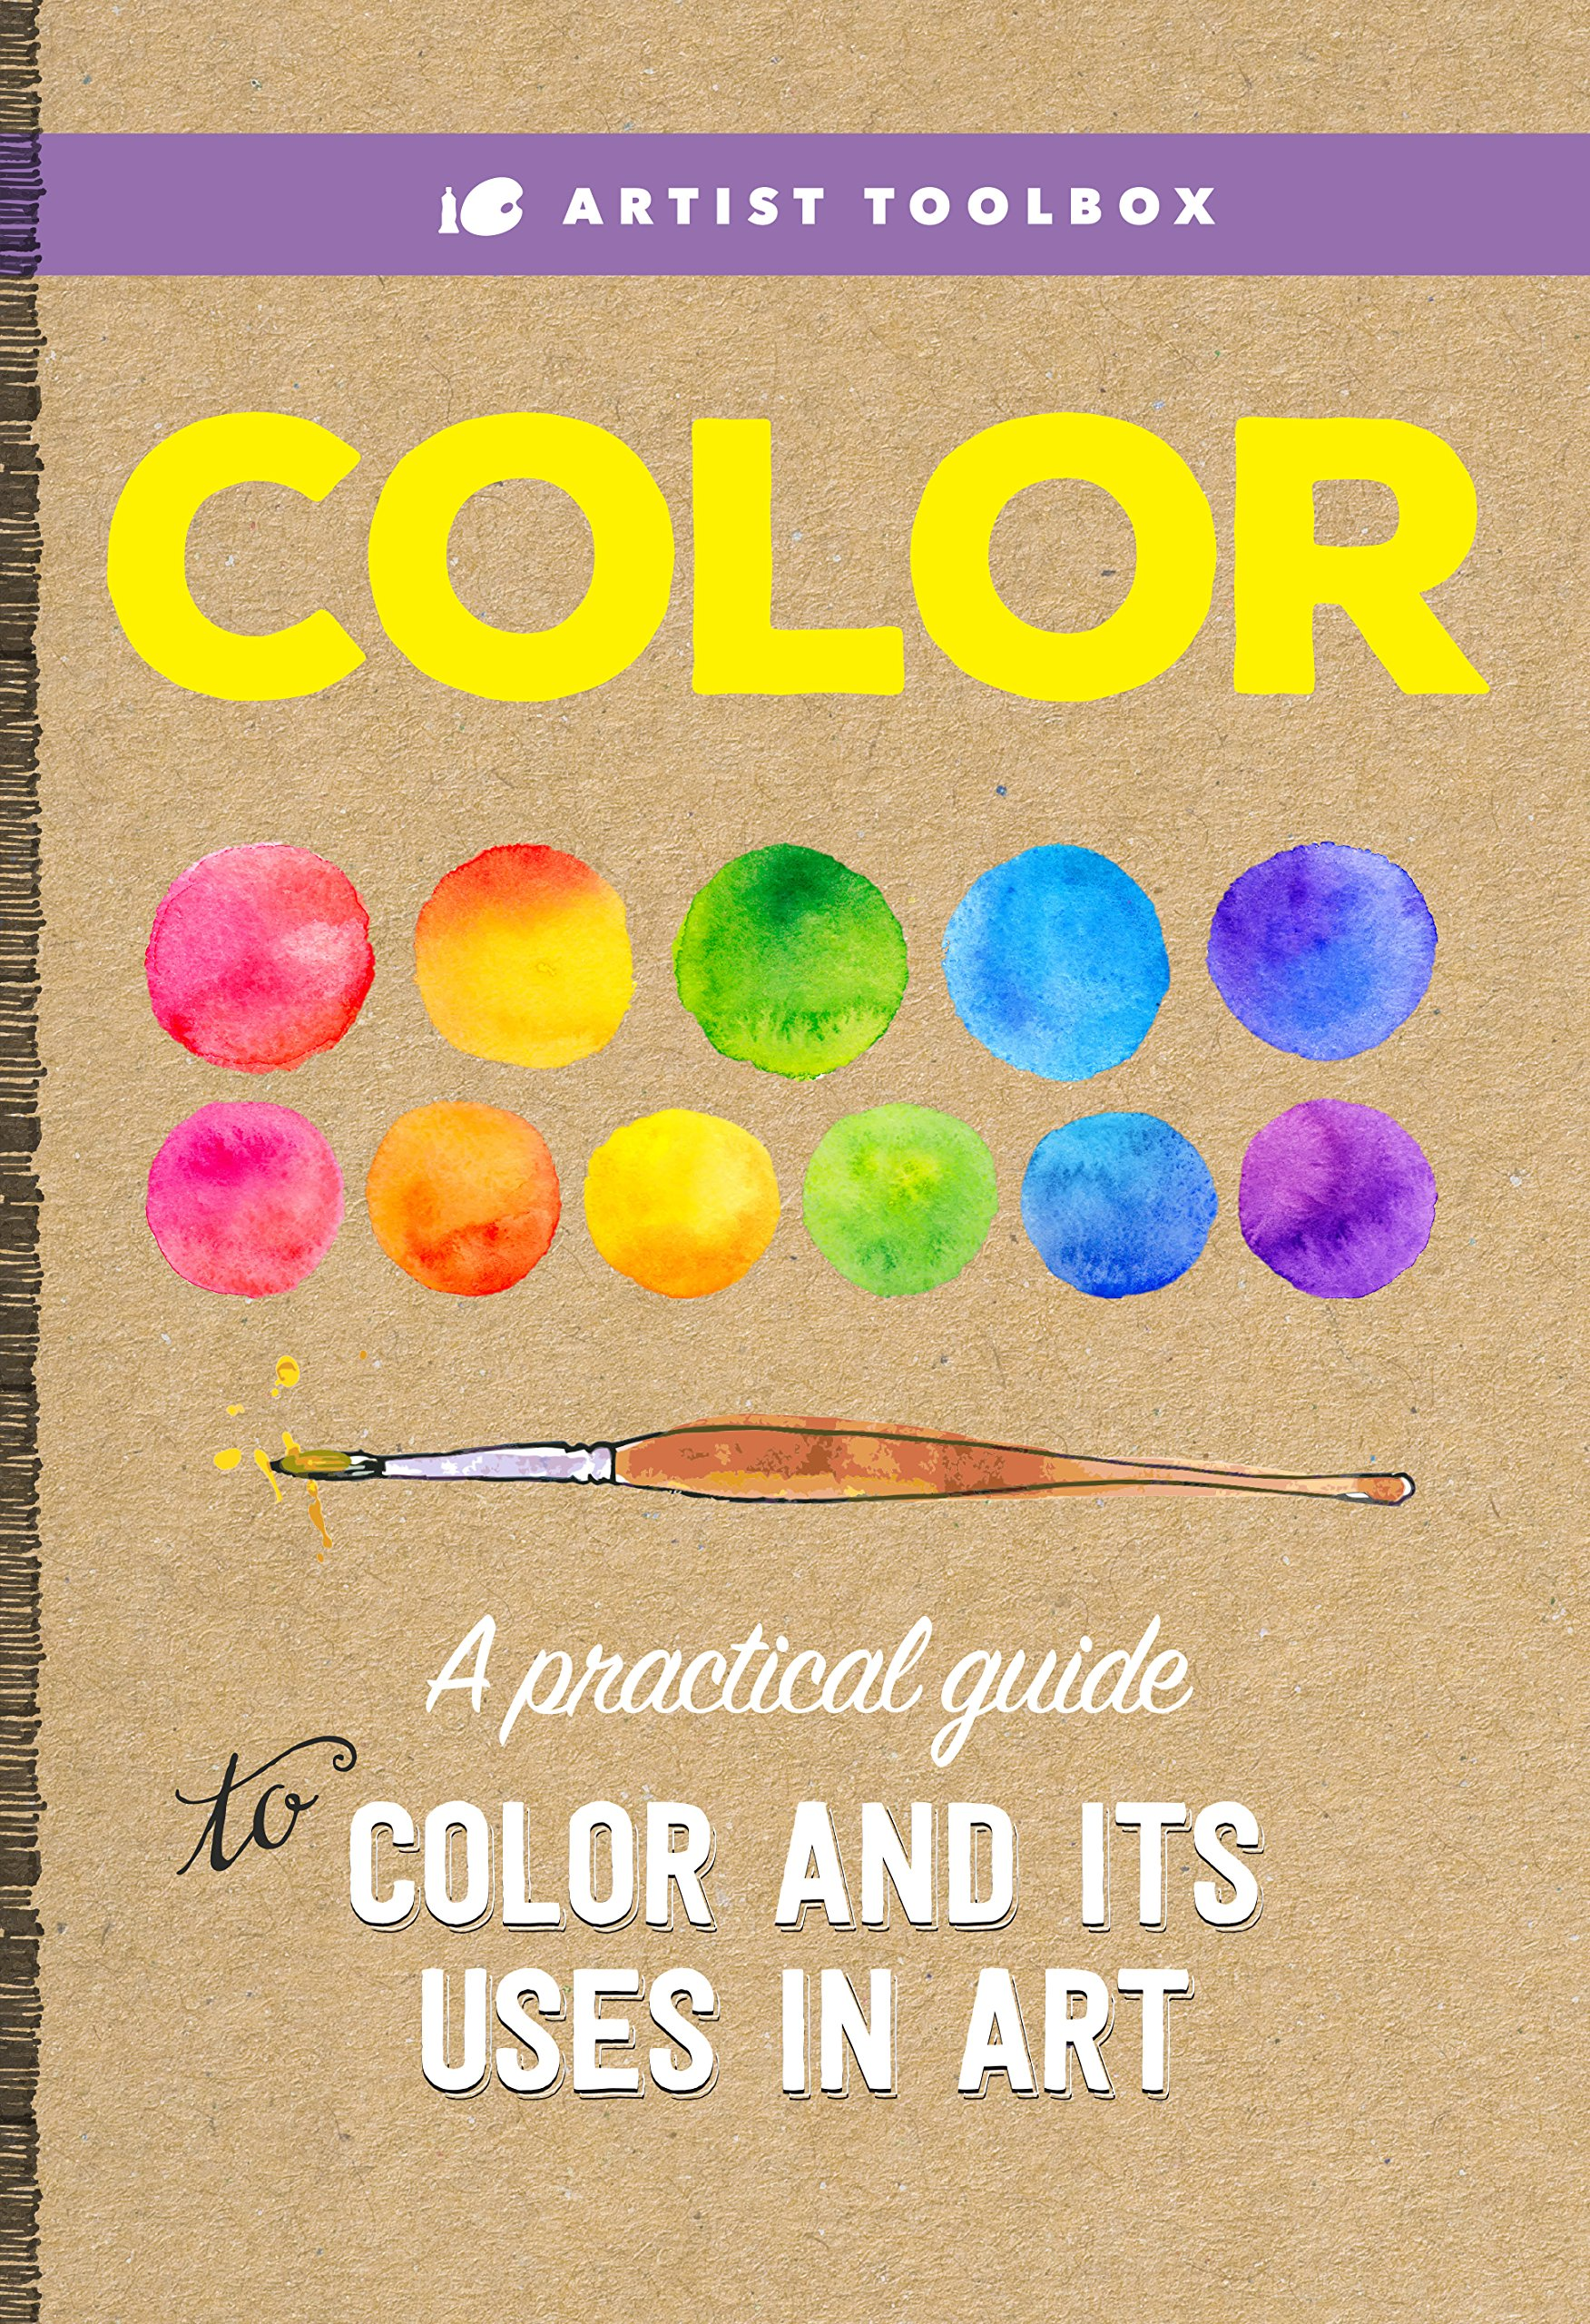 Artist Toolbox: Color: A practical guide to color and its uses in art ebook